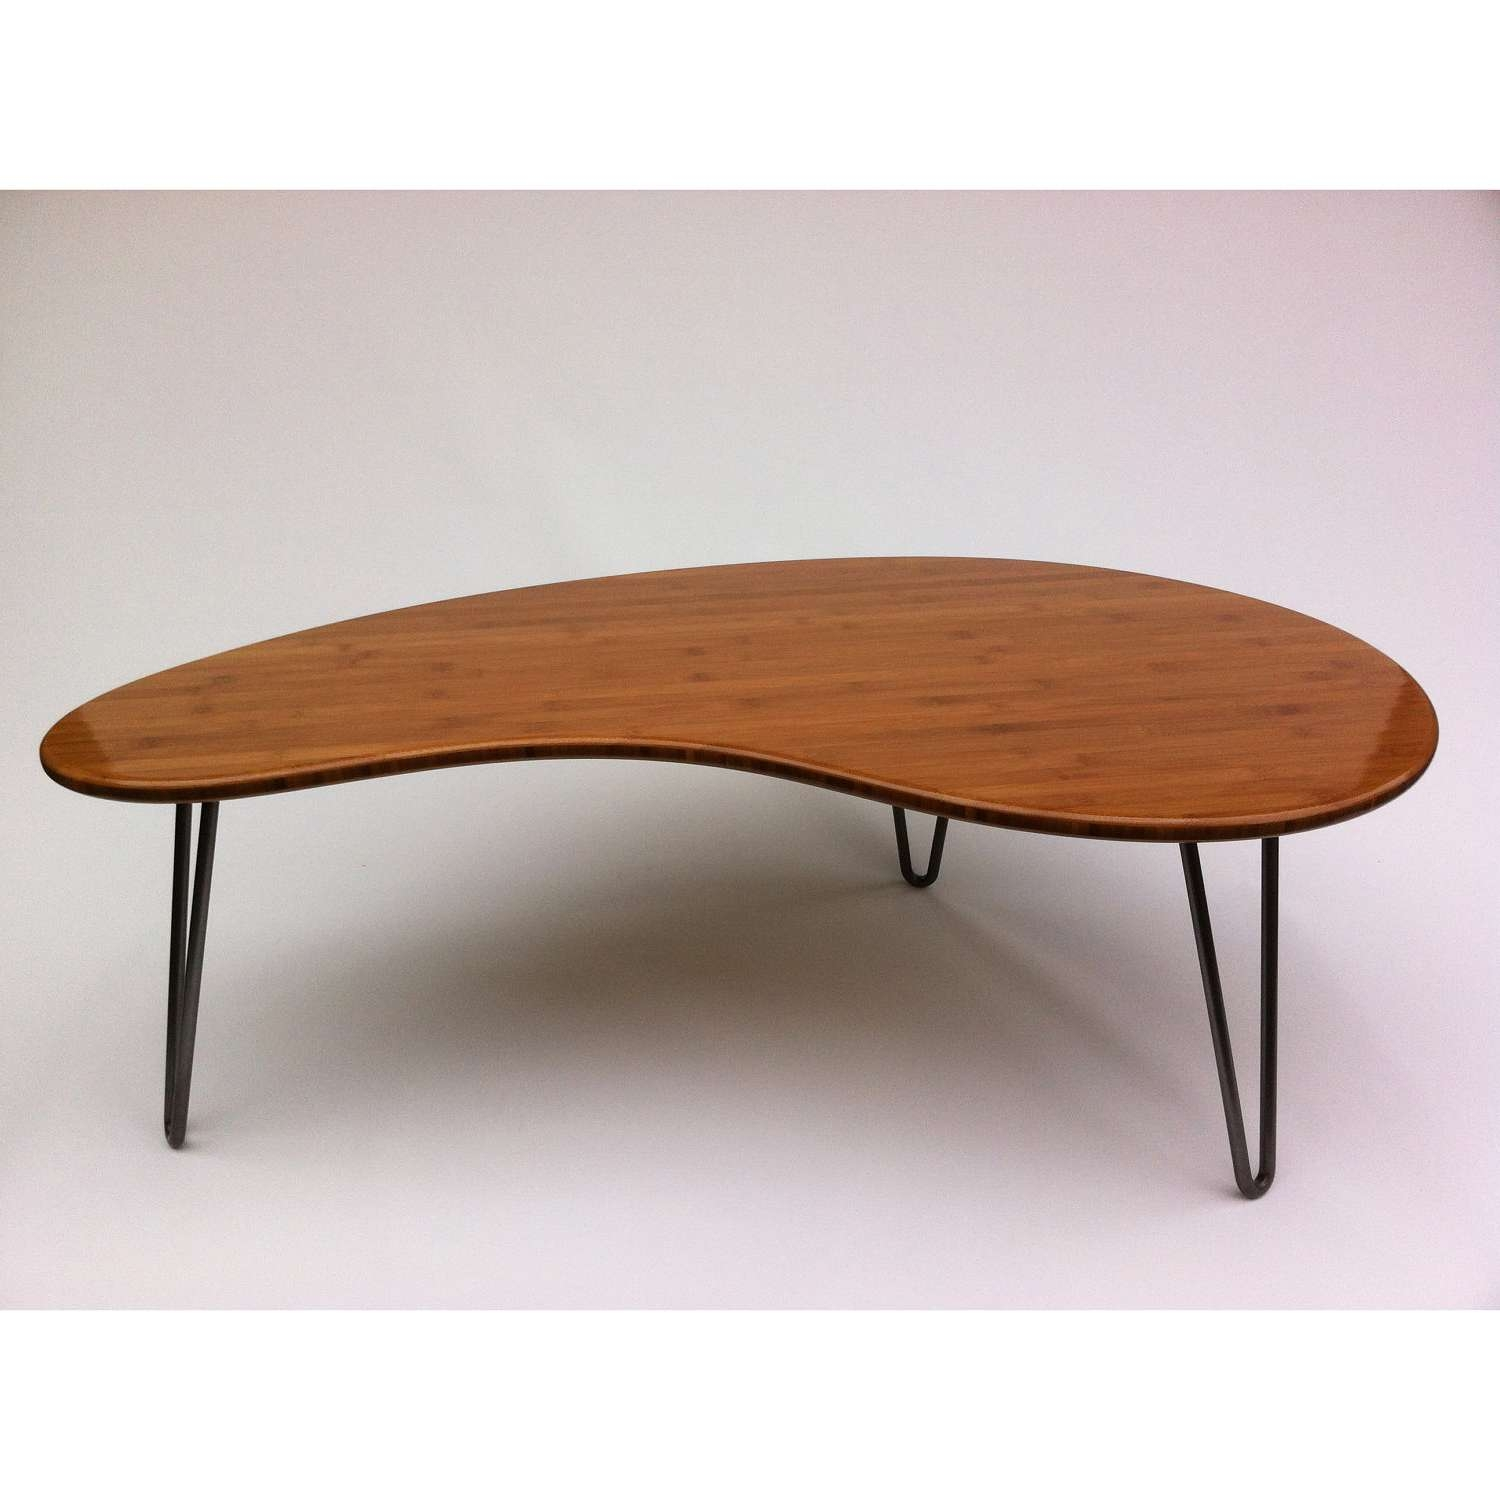 Favorite L Shaped Coffee Tables Throughout Coffee Table : Coffee Table L Shaped Ideas For Couch Shape Diy (View 11 of 20)